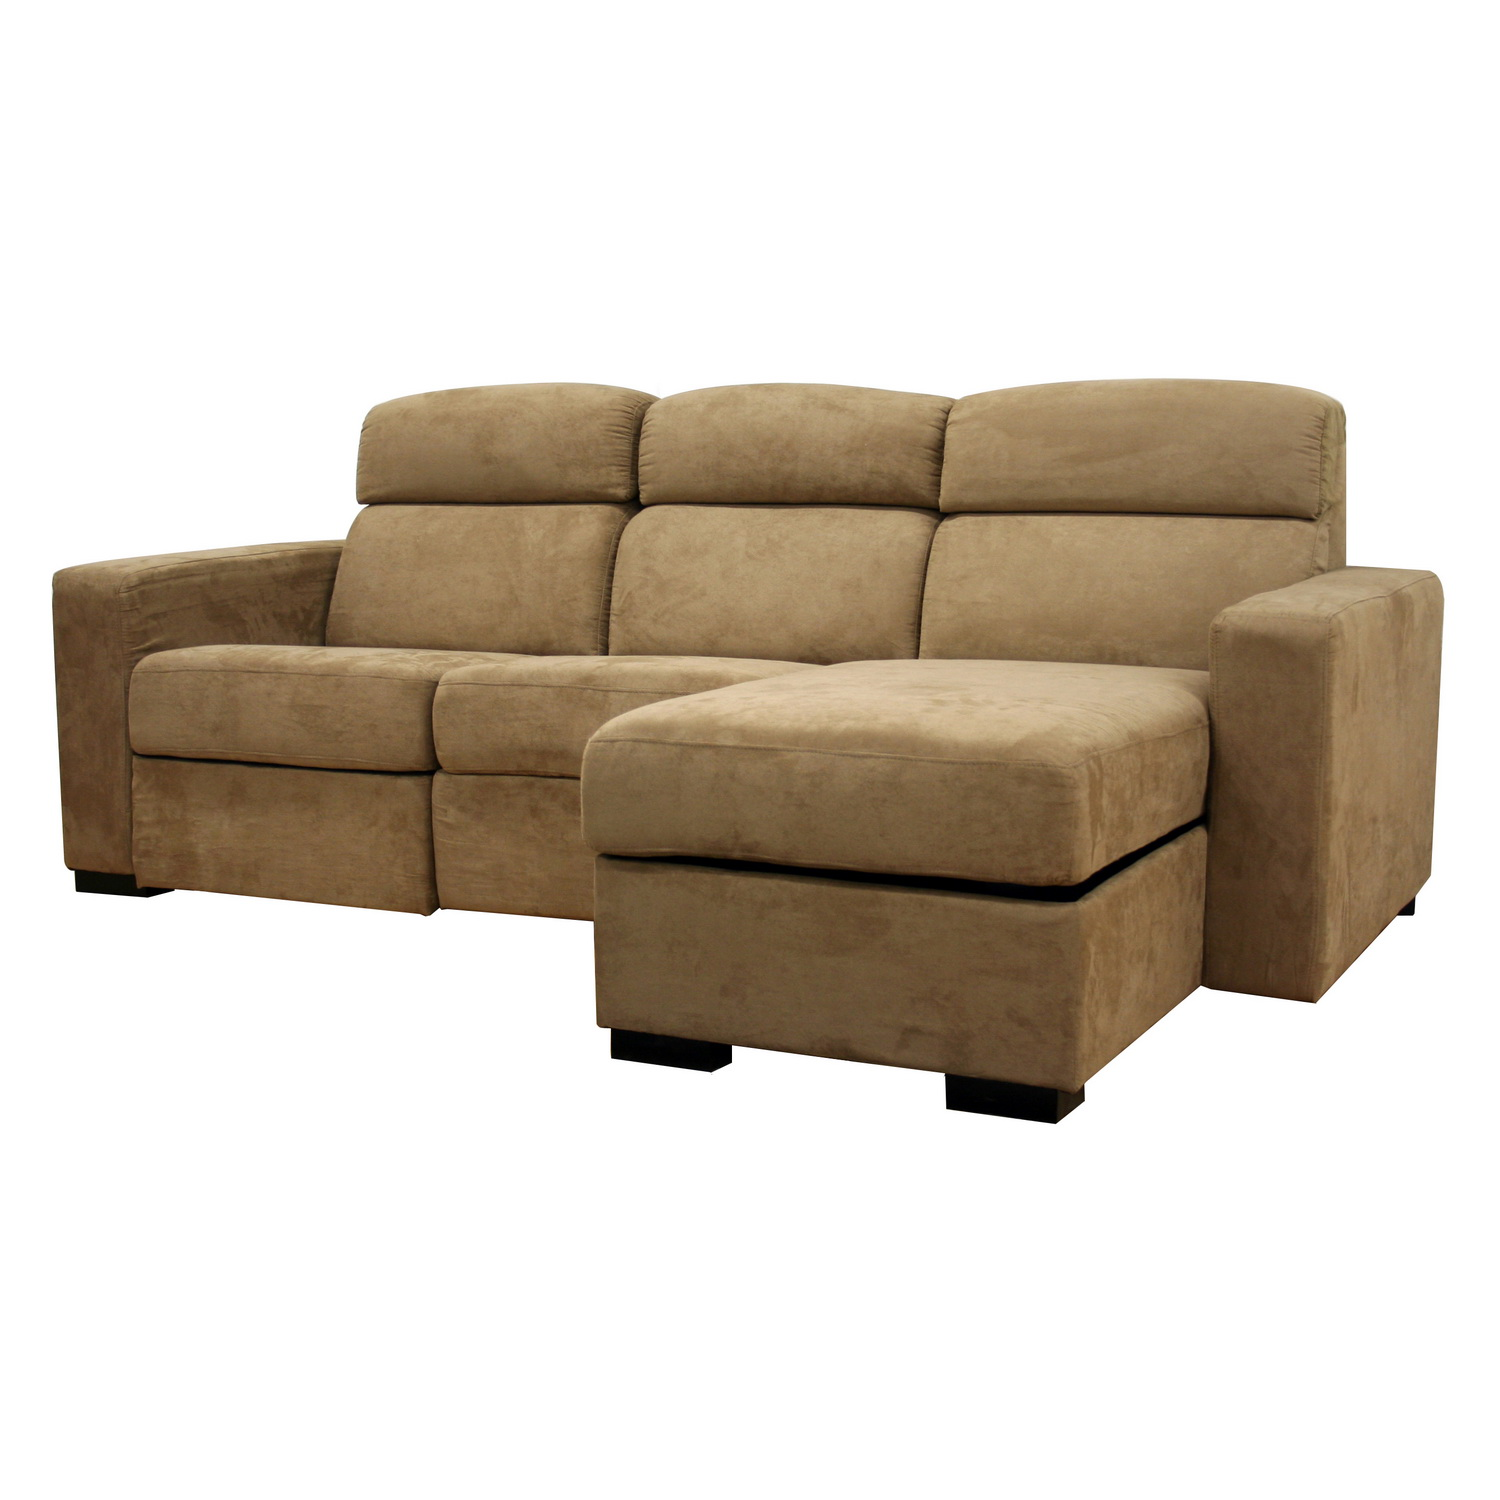 Sectional sofa with chaise recliner and sleeper for Chaise lounge couch